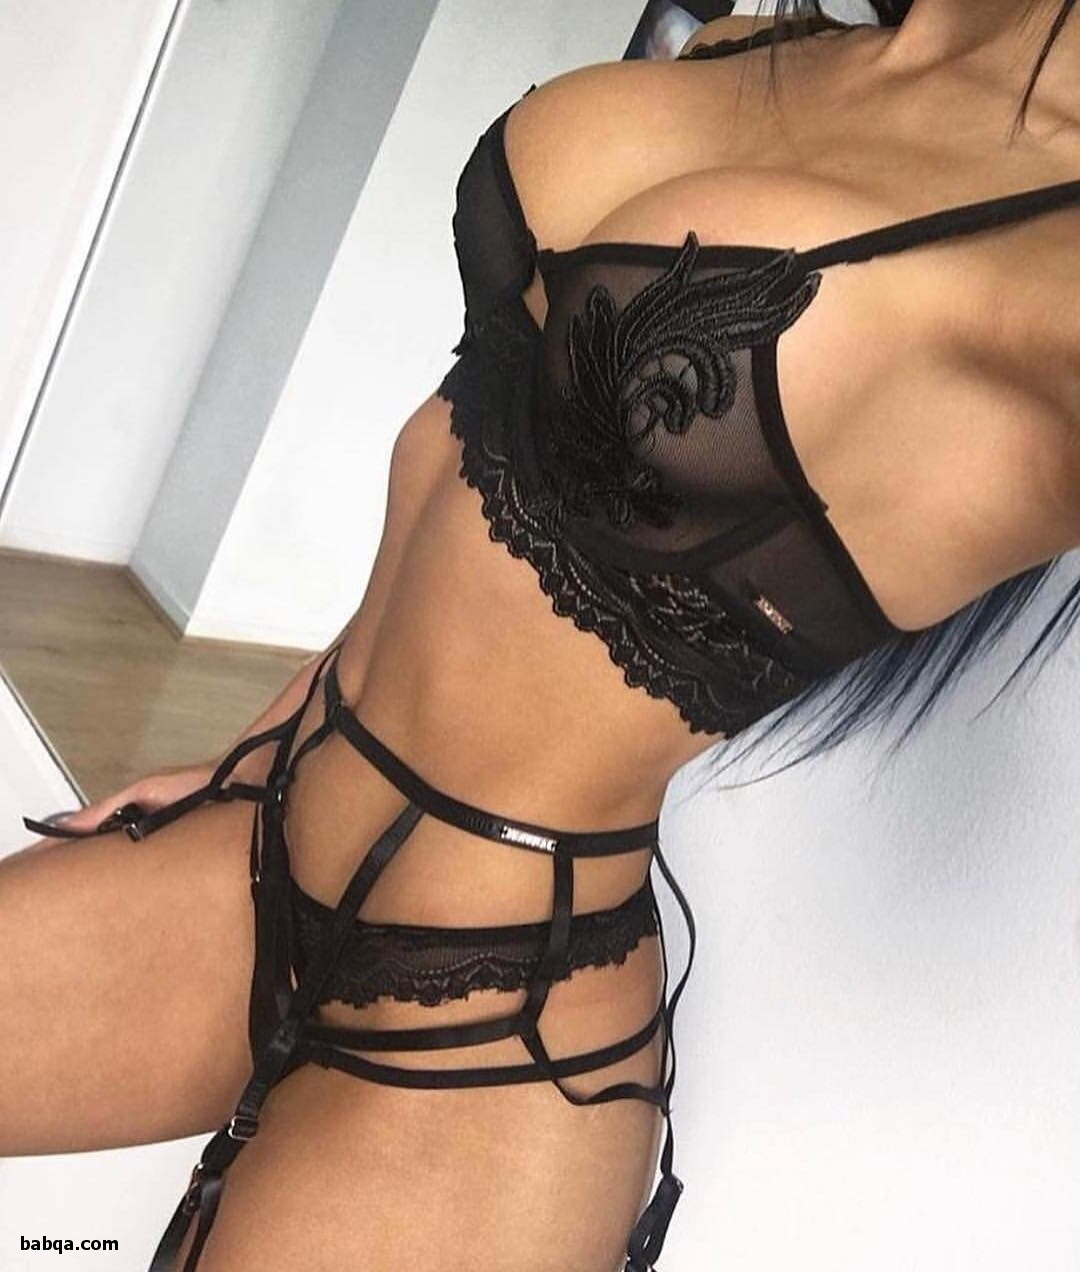 stockings heels ing and chubby girls in sexy lingerie